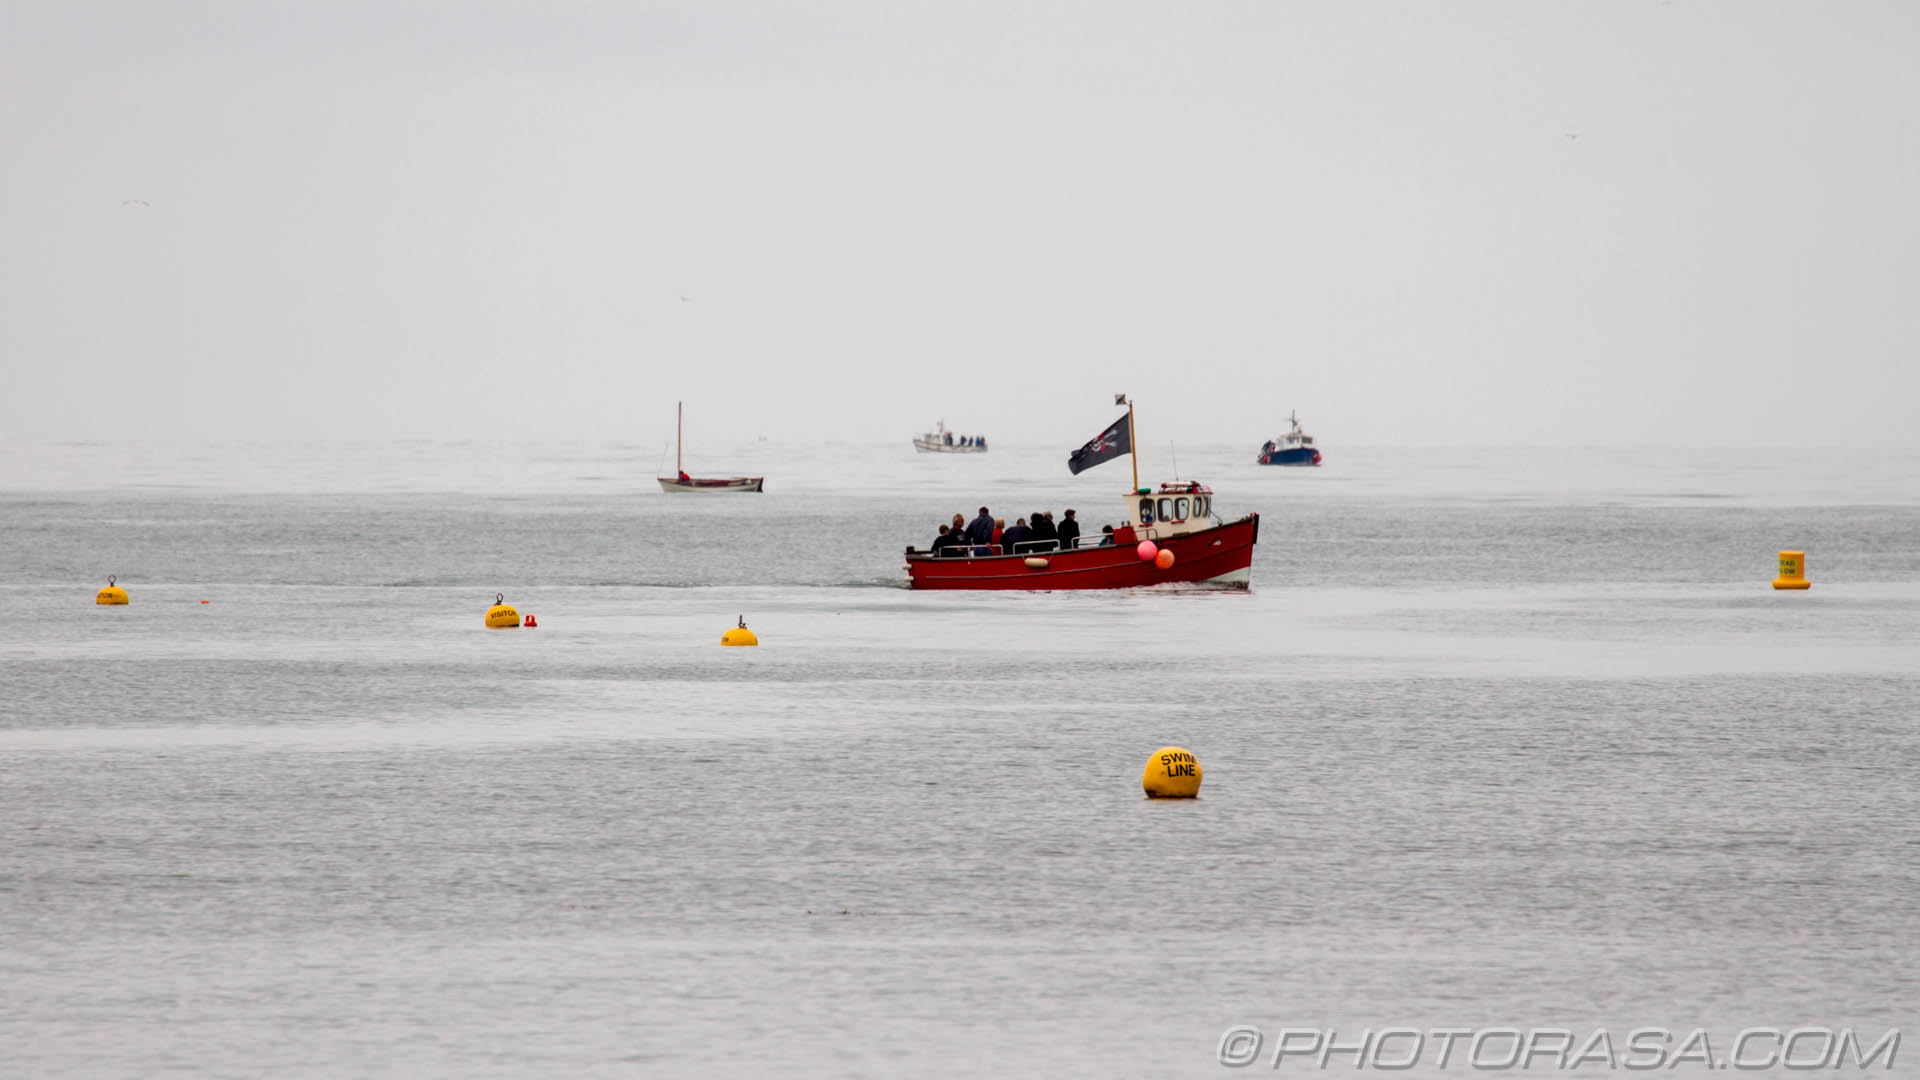 http://photorasa.com/sea-lyme-regis/boat-trips-and-bouys/